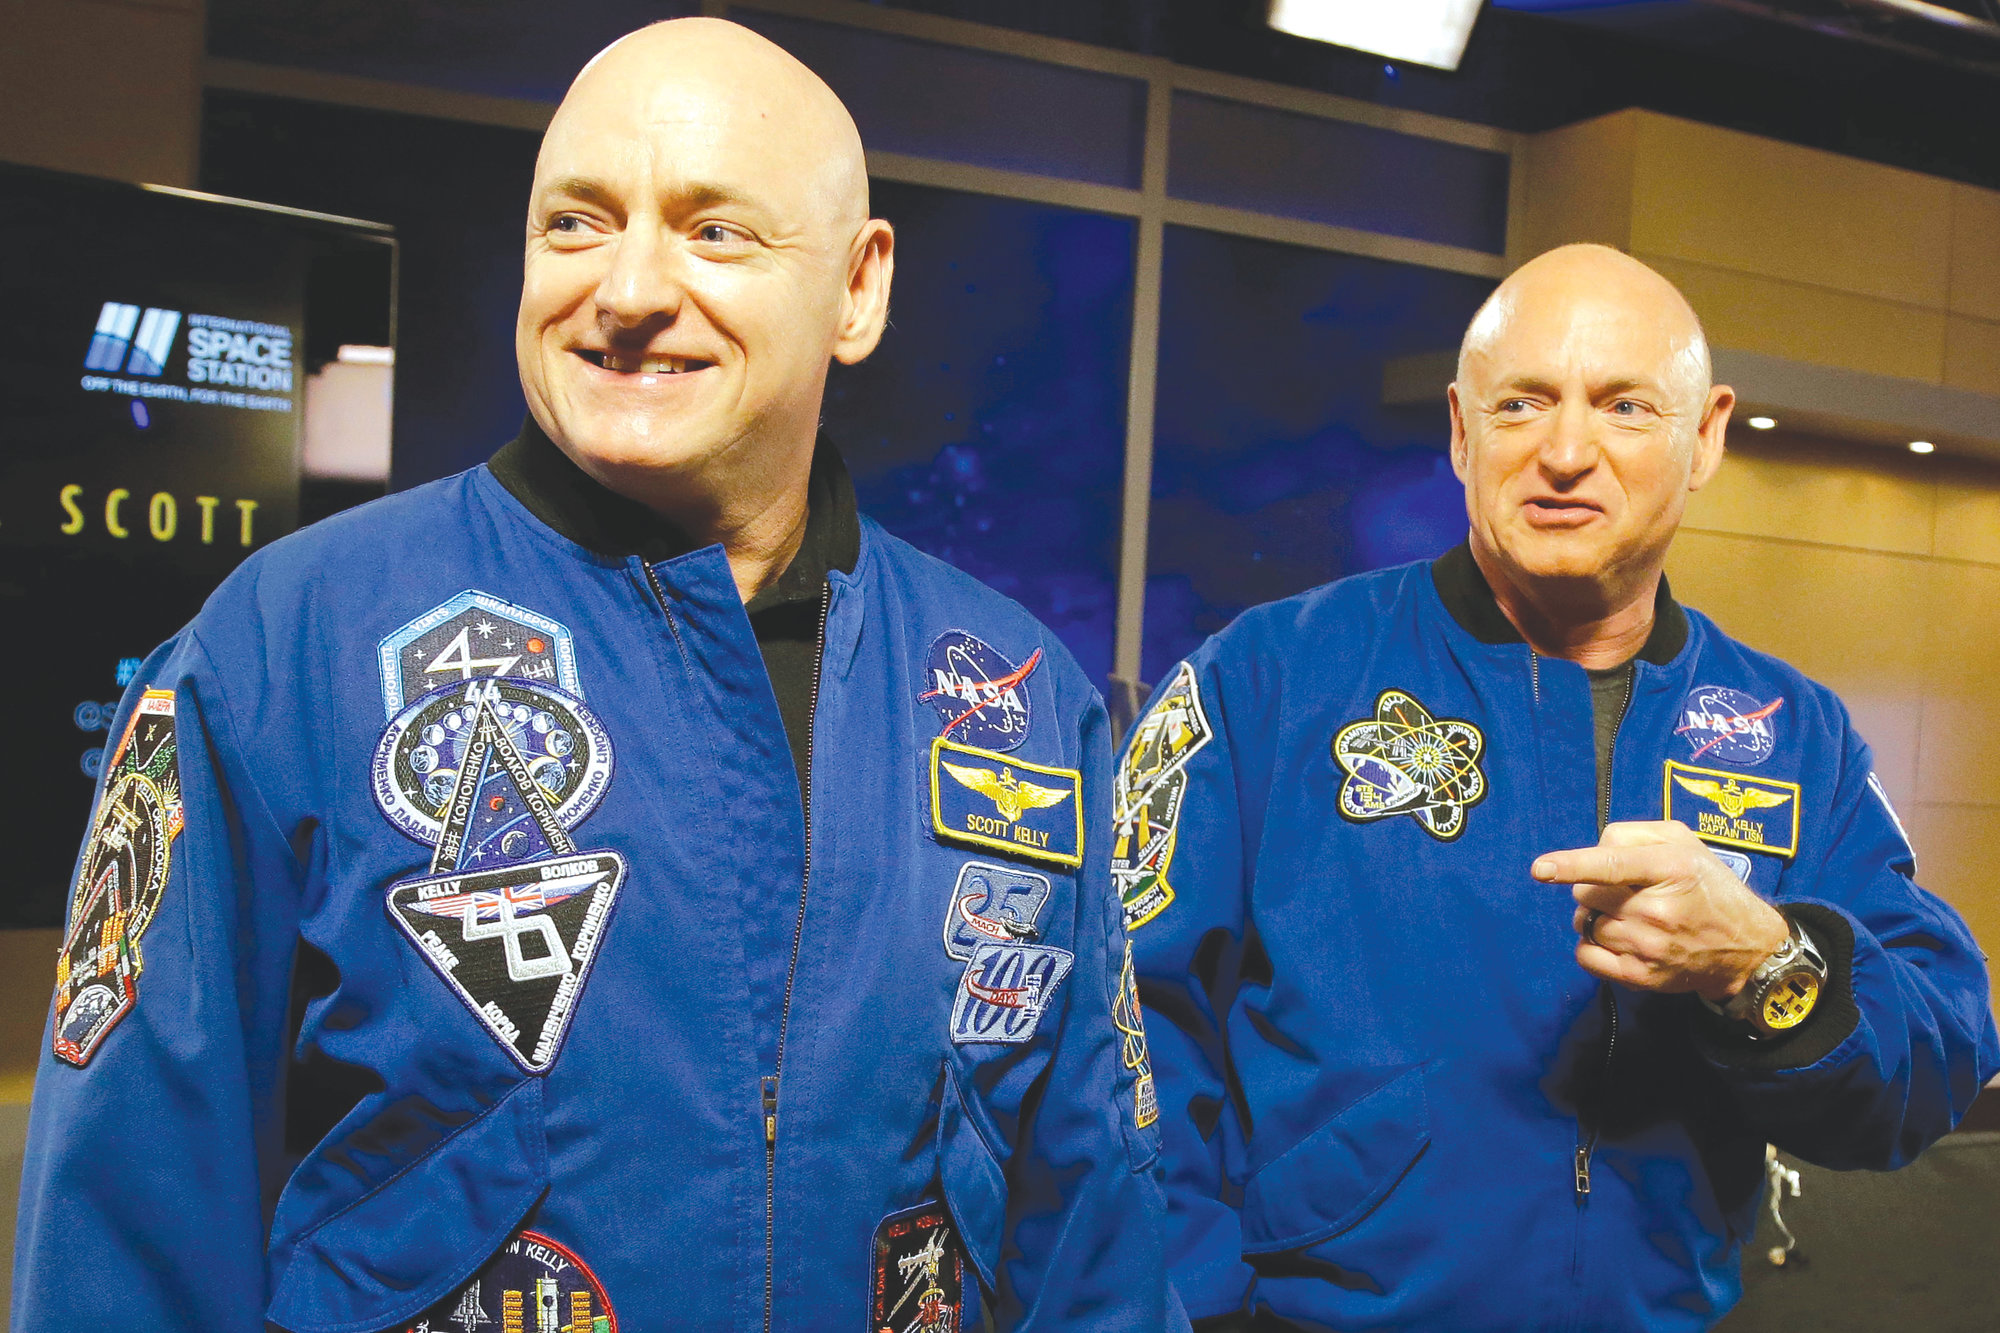 NASA astronaut Scott Kelly, left, and his identical twin, Mark, stand together before a news conference in Houston in 2016.